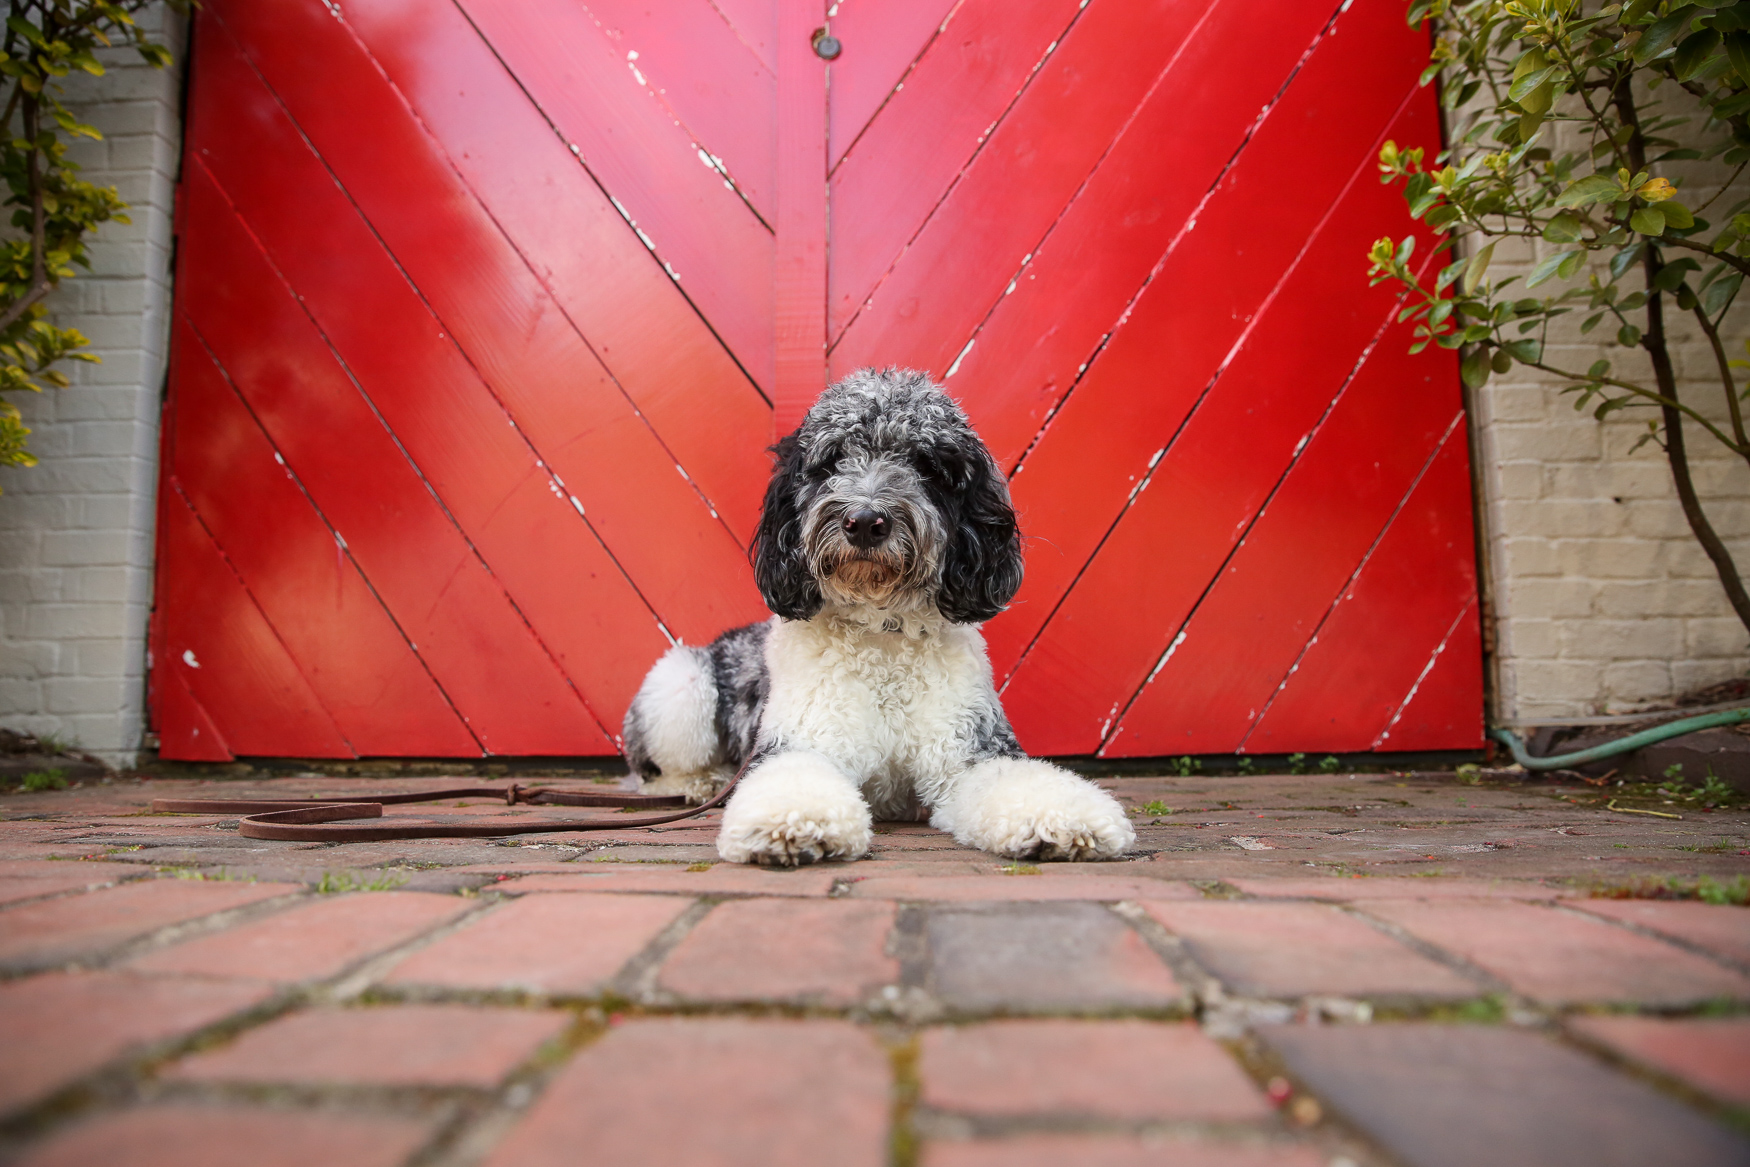 "Meet Scrummer, a 15-month-old Cockapoo. He came home to be with his family at just 8 weeks old, and came from Indiana.{ }He LOVES his rugby ball (his all time favorite toy) and hiking, so the fam tries to get out to the mountains twice a month. Scrummer enjoys the freedom of the trail and carries his backpack with his water, kibble, treats and first aid kit. When he sees his pack come out he gets so excited because he knows that means an adventure is coming. On the flip side, he HATES the car. He gets super anxious and drools everywhere. One of his family's favorite memories with Scrummer was on a recent hike when his momma was having a particularly stressful week. ""When we reached the summit of our hike I sat down to take it all in,"" said Scrummer's mom. ""Scrummer came and sat right next to me, leaned up against me, and just stayed like that for 15 minutes. It was something simple, but so sweet."" If you're interested in having your pup featured, drop us a line at aandrade@dcrefined.com, but we do have quite the waiting list right now so we appreciate your patience! (Image: Amanda Andrade-Rhoades/DC Refined)"